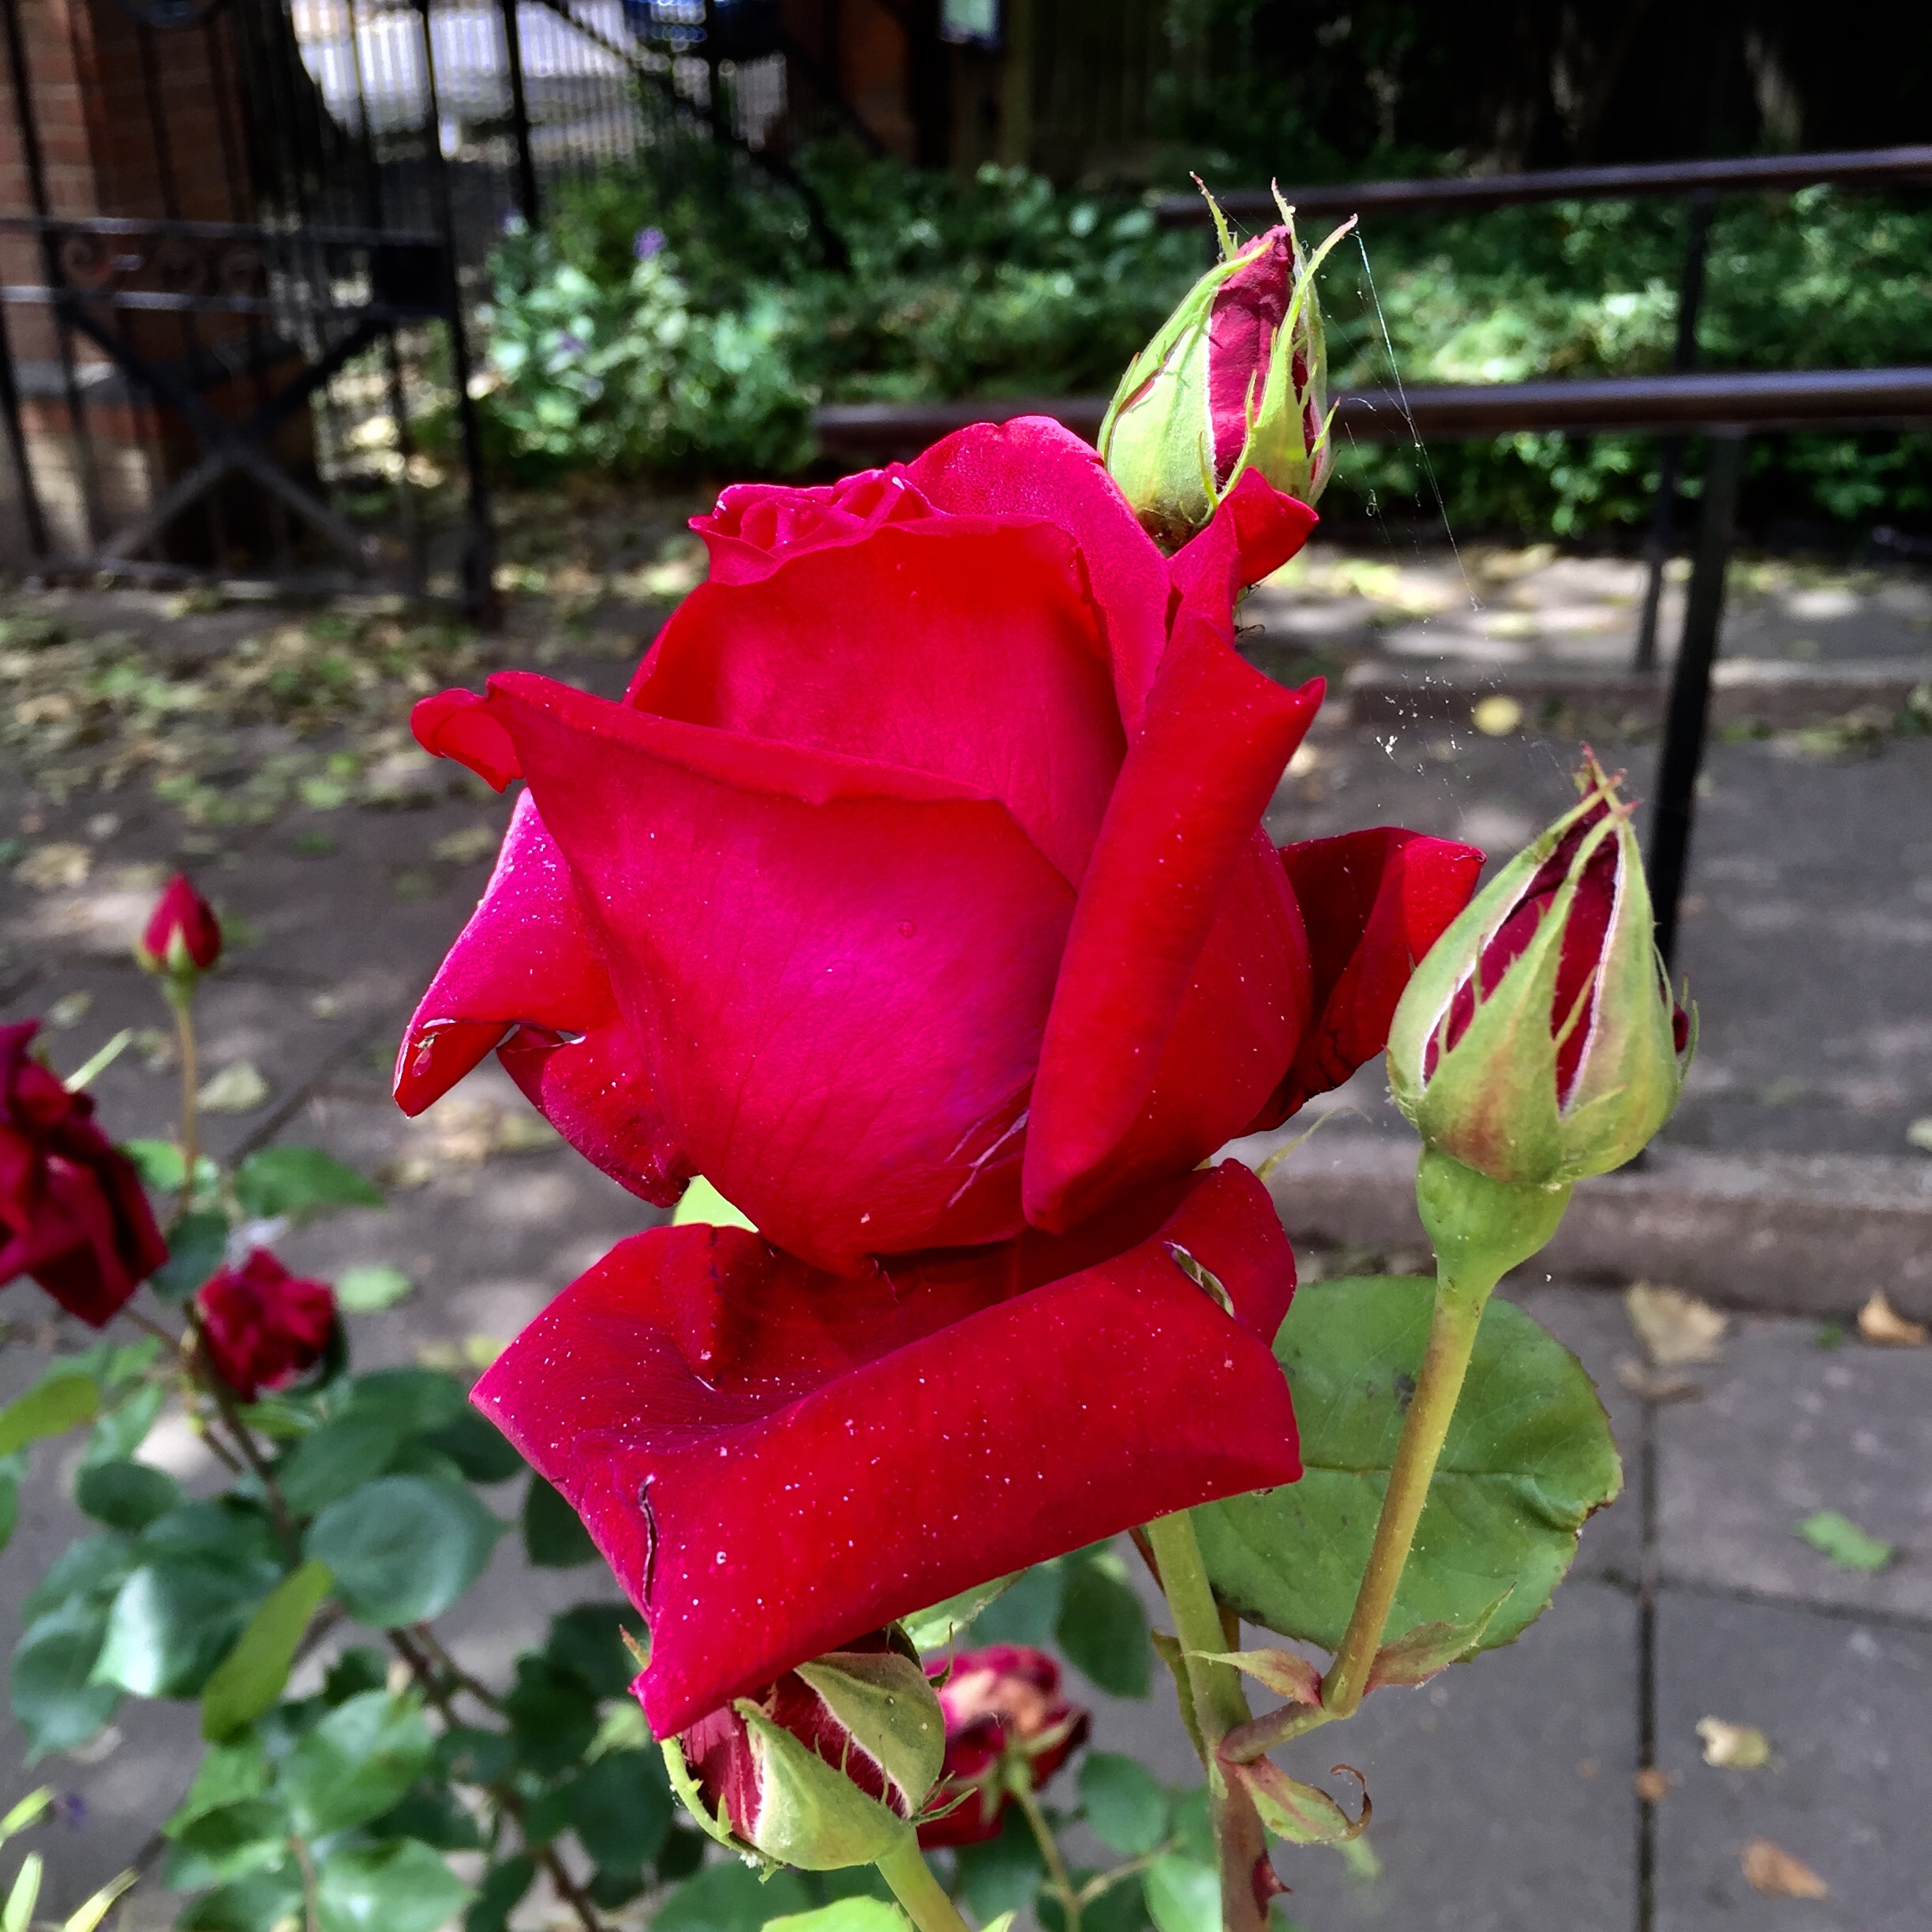 Our family loved roses, our garden way back, was alive with them.